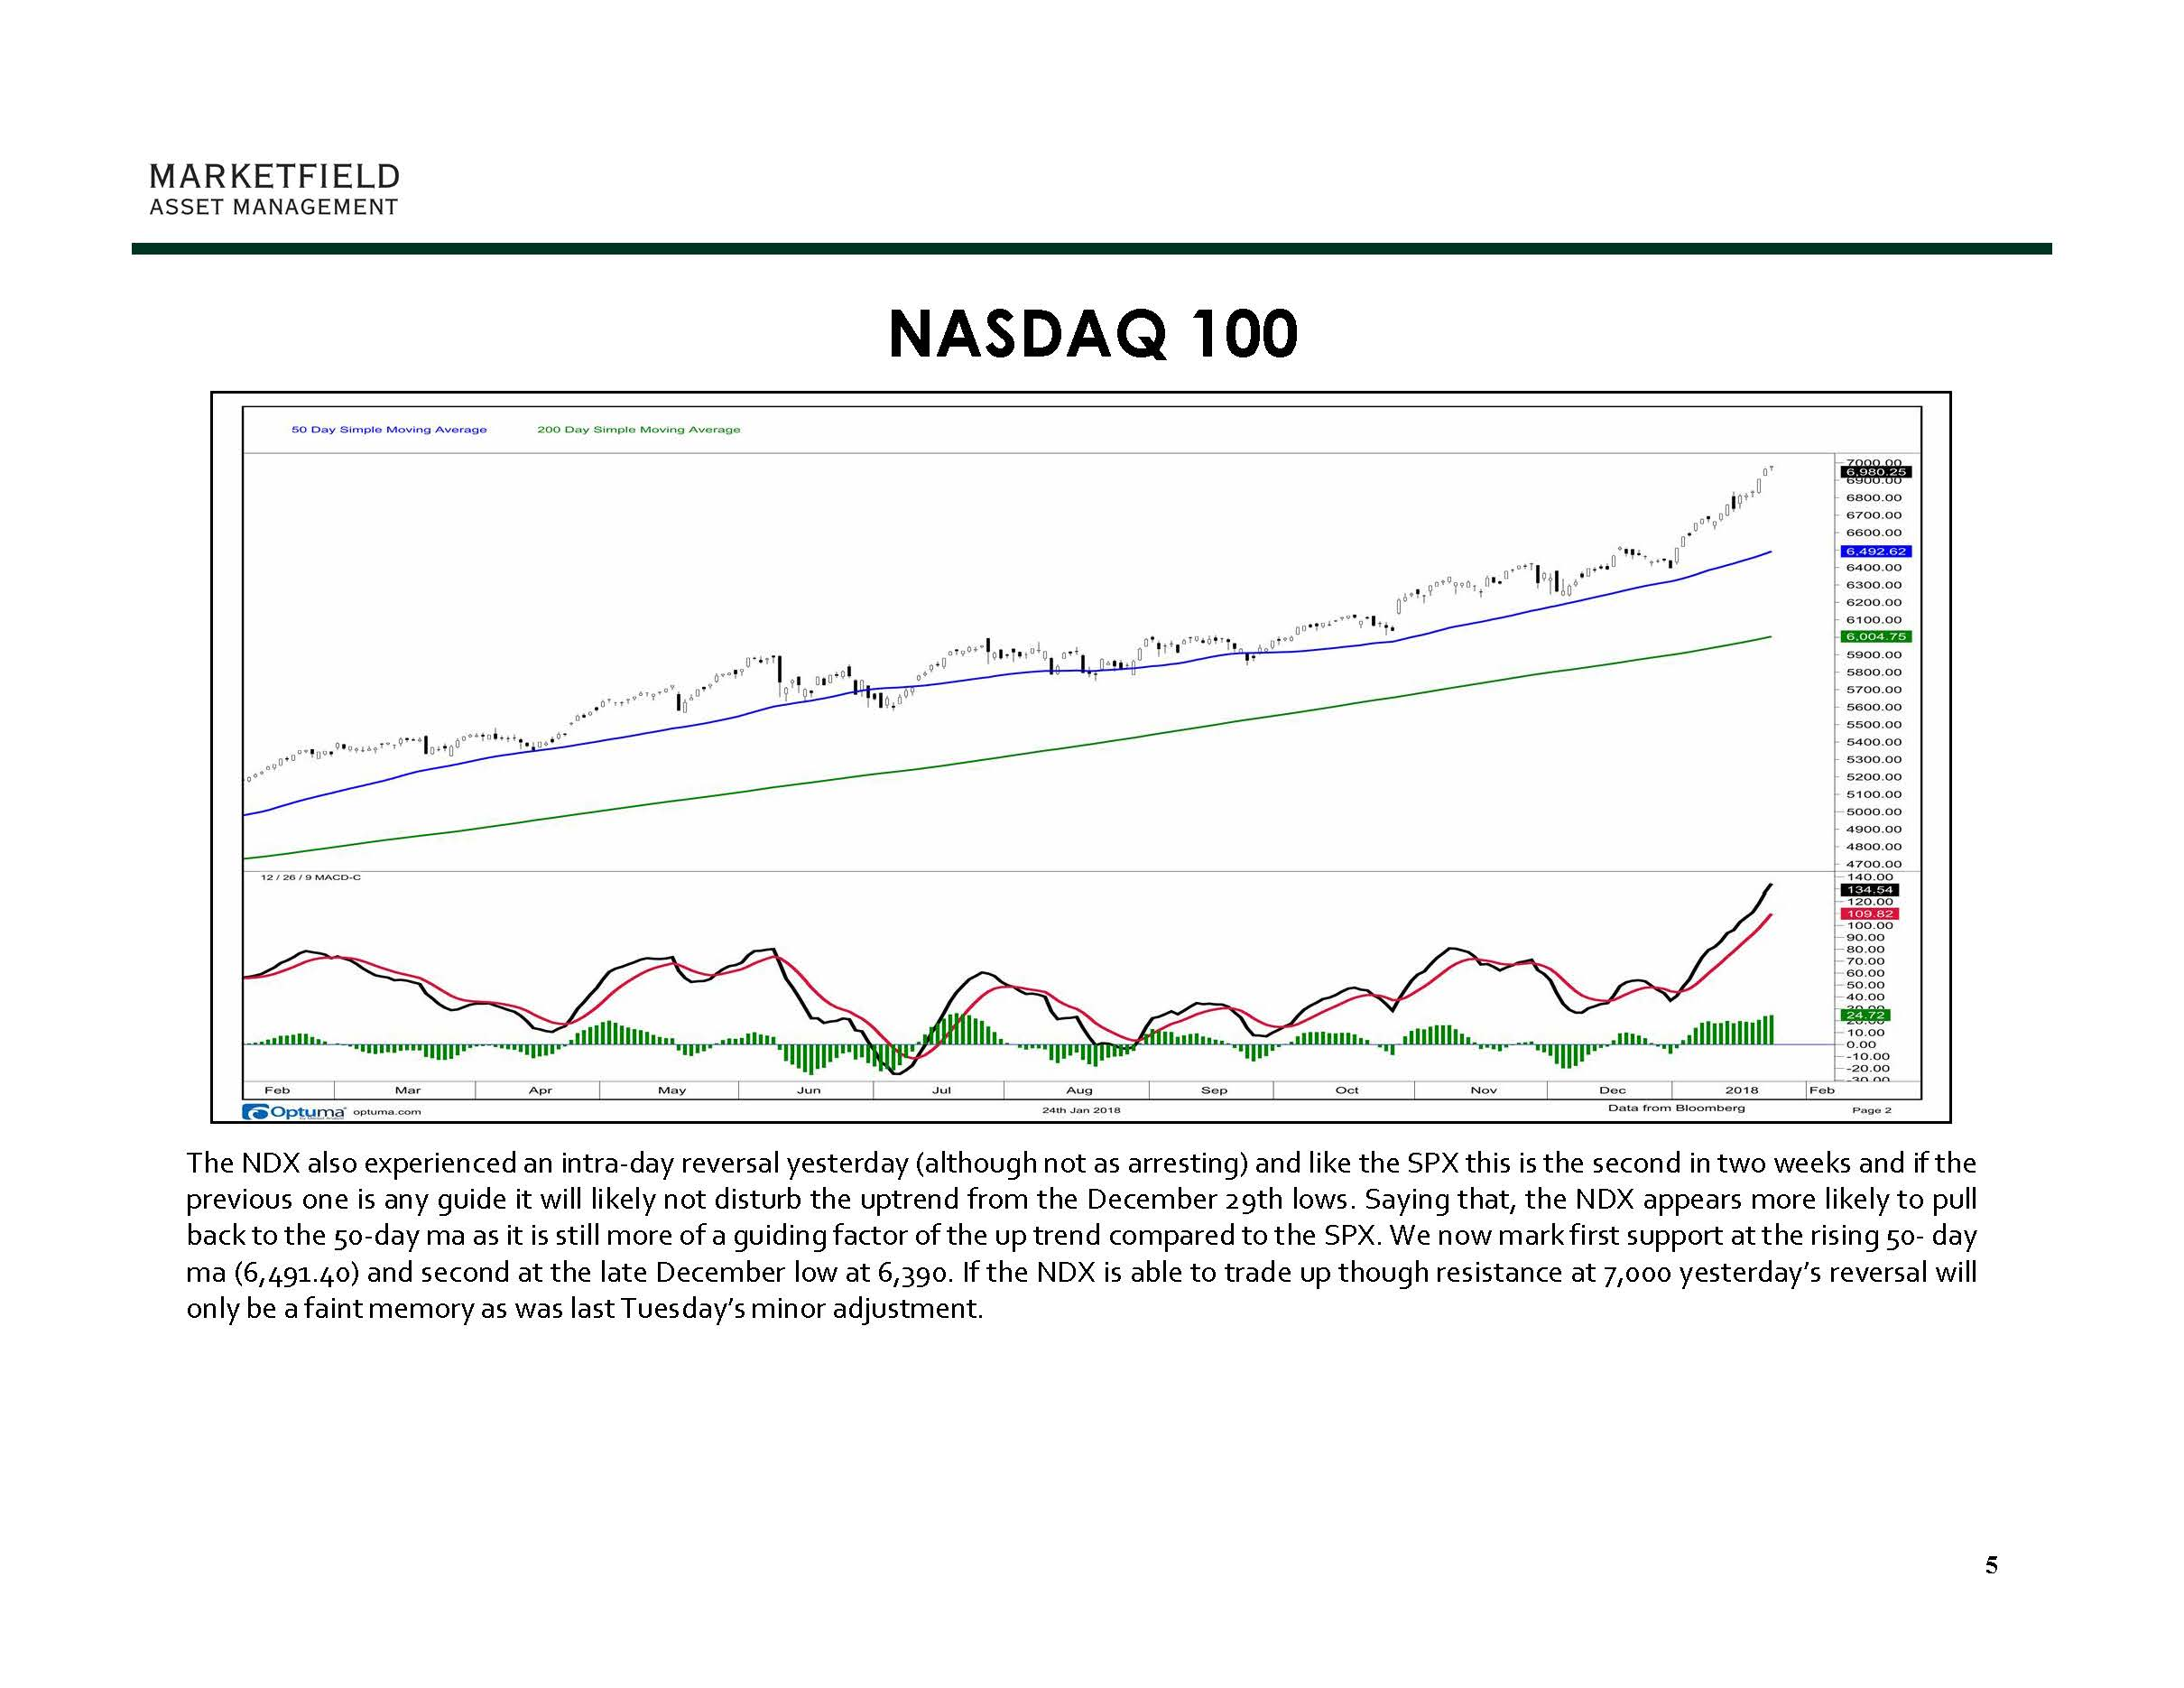 marketfield weekly speculator for 01-25-18_Page_05.jpg